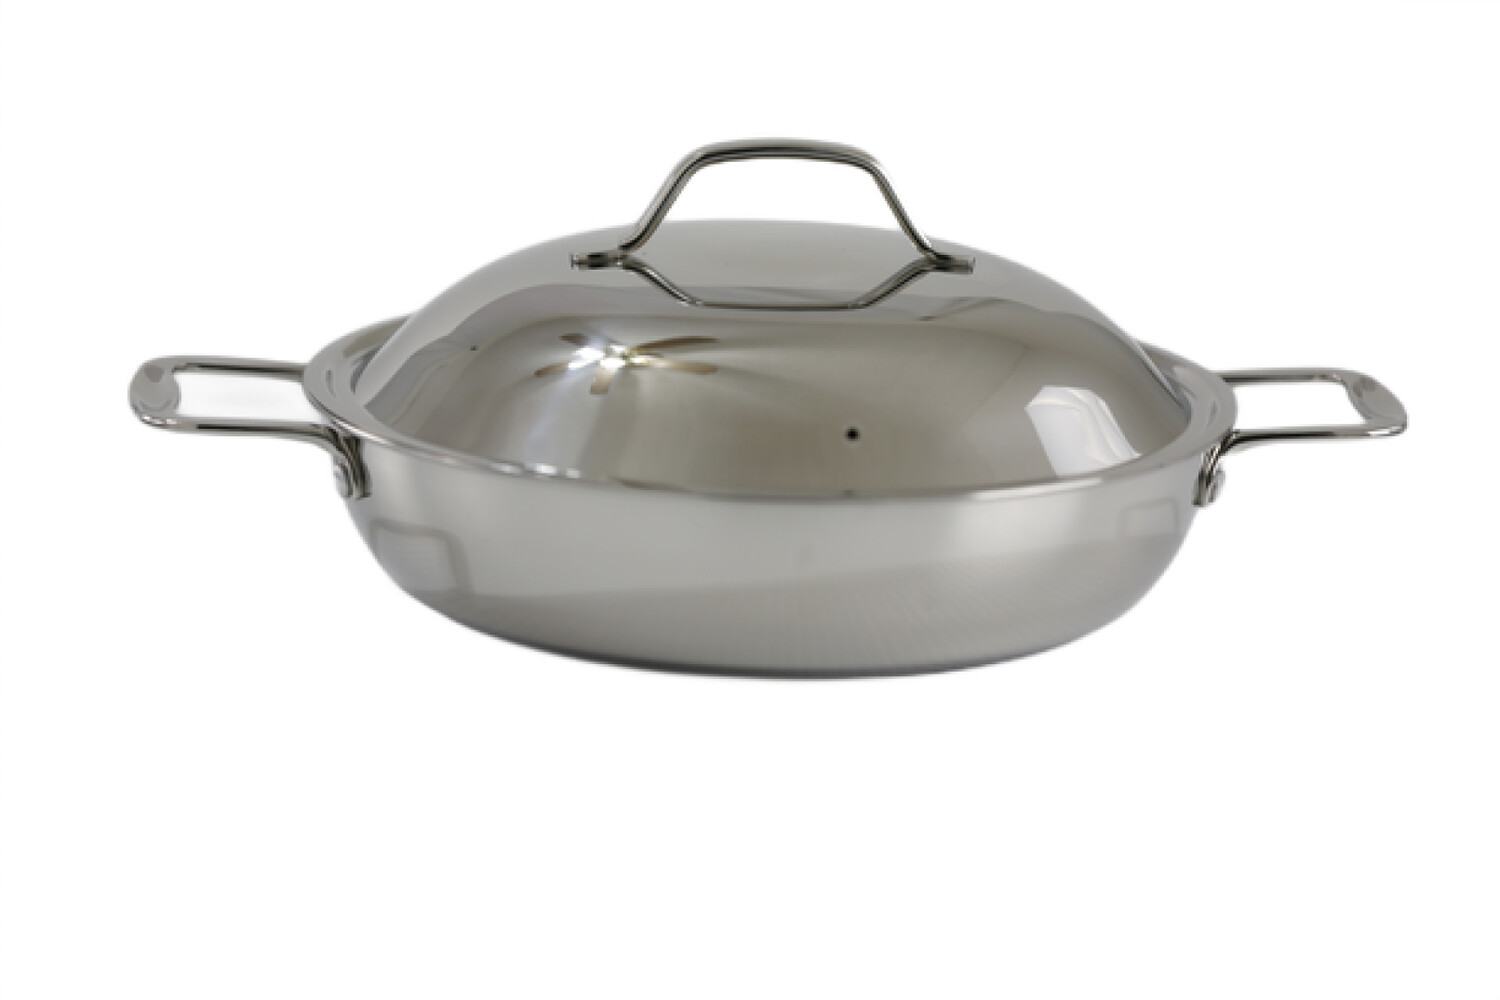 Stainless Steel Everyday Pan with Dome Cover